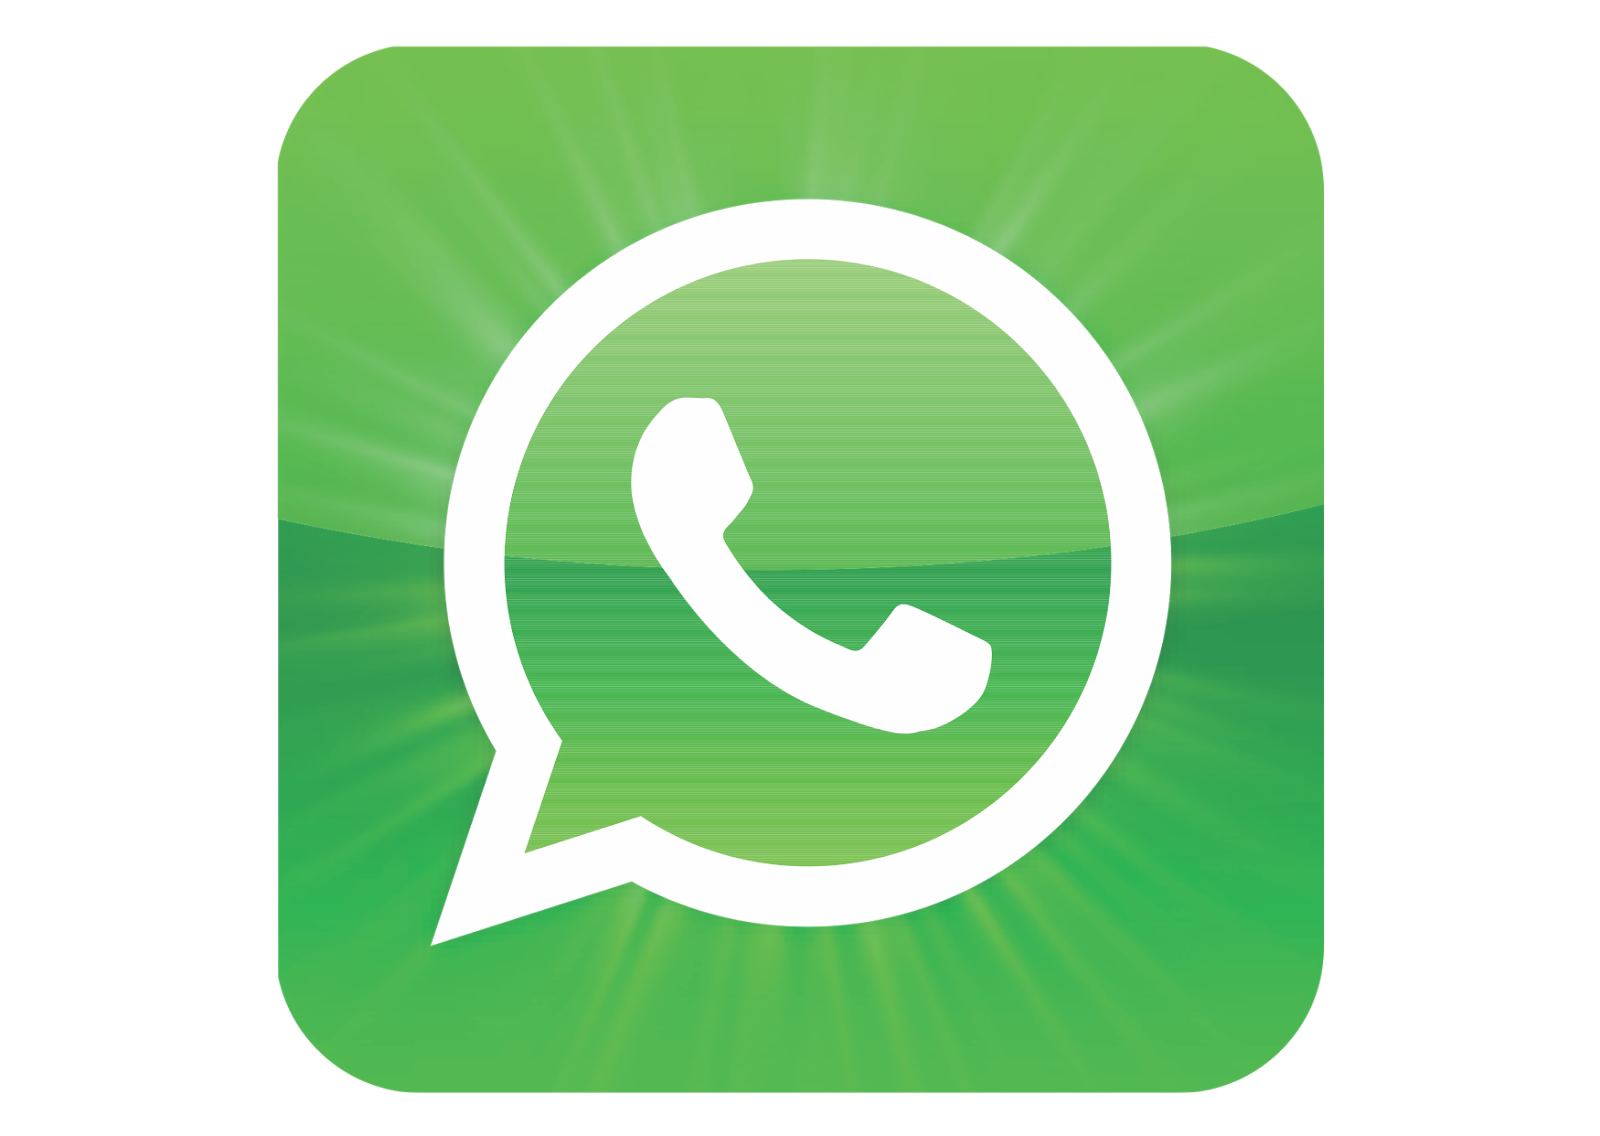 Whatsapp Png Images Free Download - Whatsapp Logo PNG